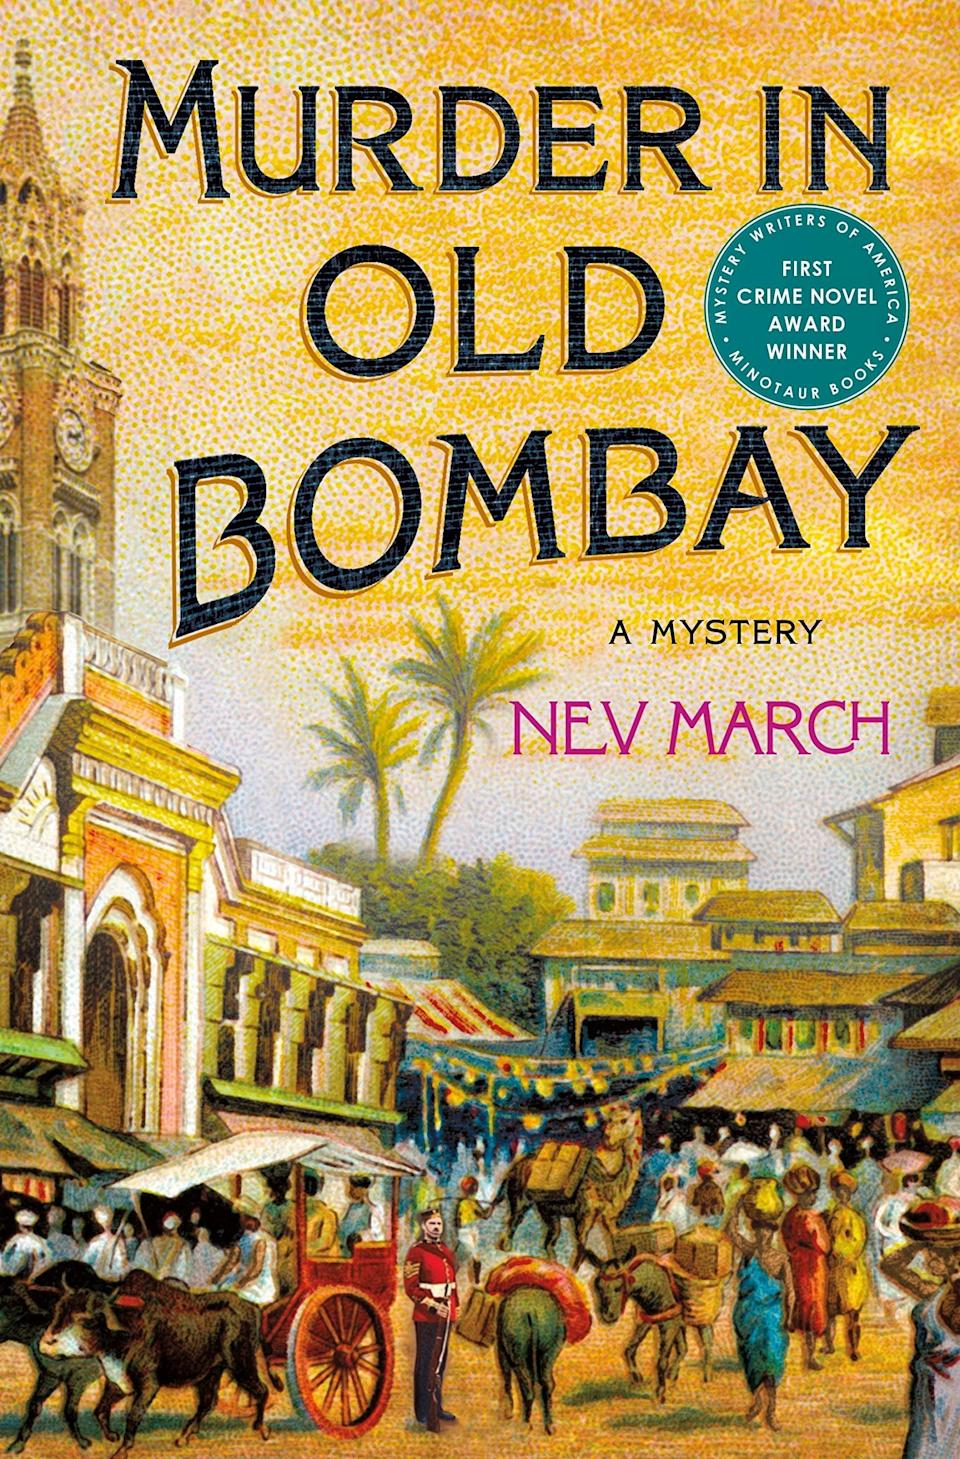 <p>Based on a true story, Nev March's thrilling debut, <span><strong>Murder in Old Bombay</strong></span>, transports readers to a divided India where a Sherlock Holmes-obsessed military man takes on a tricky case. When two women seemingly jump from a clock tower in the middle of the day, everyone assumes it's suicide, but at the behest of a mourning husband, Captain Jim Agnihotri decides he can uncover the truth about what really happened that fateful day. </p> <p><em>Out Nov. 10</em></p>